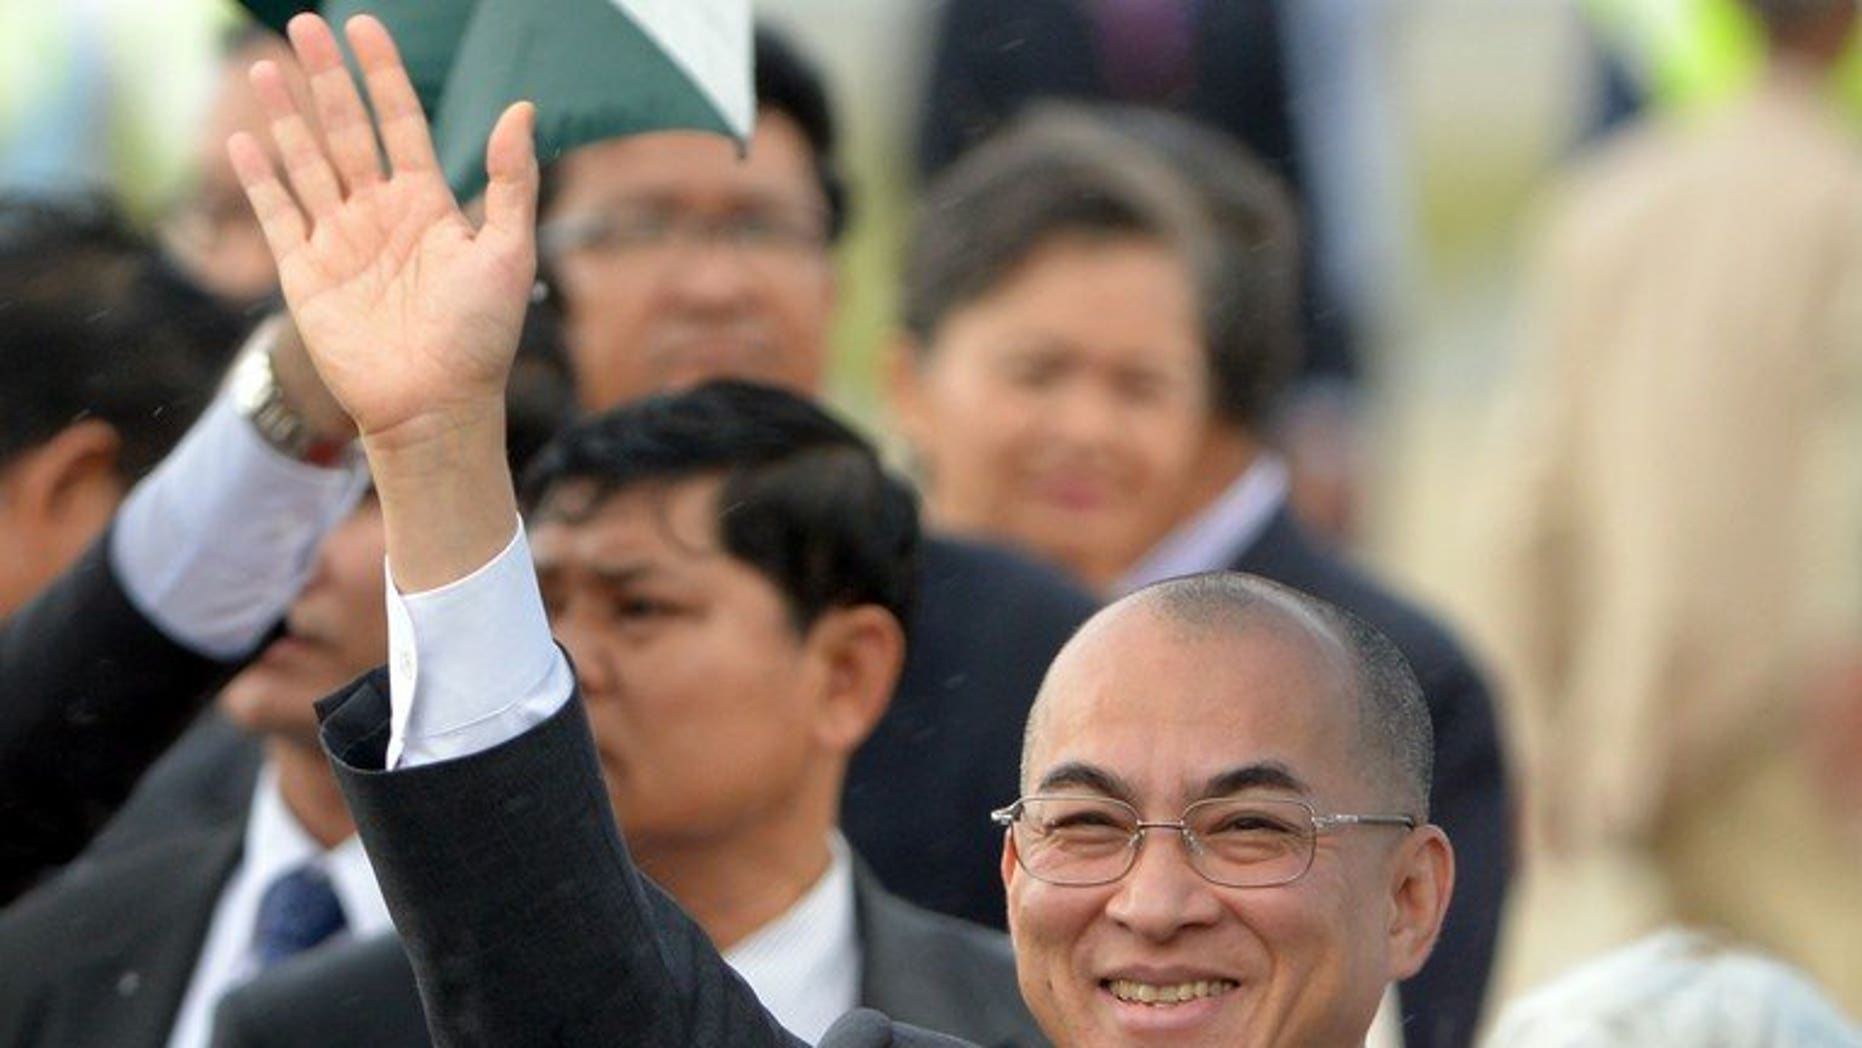 """Cambodia's King Norodom Sihamoni, pictured on September 11, 2013, appealed to opposition lawmakers Wednesday to drop a planned boycott of parliament for the sake of """"national unity"""" following strongman premier Hun Sen's disputed election win."""